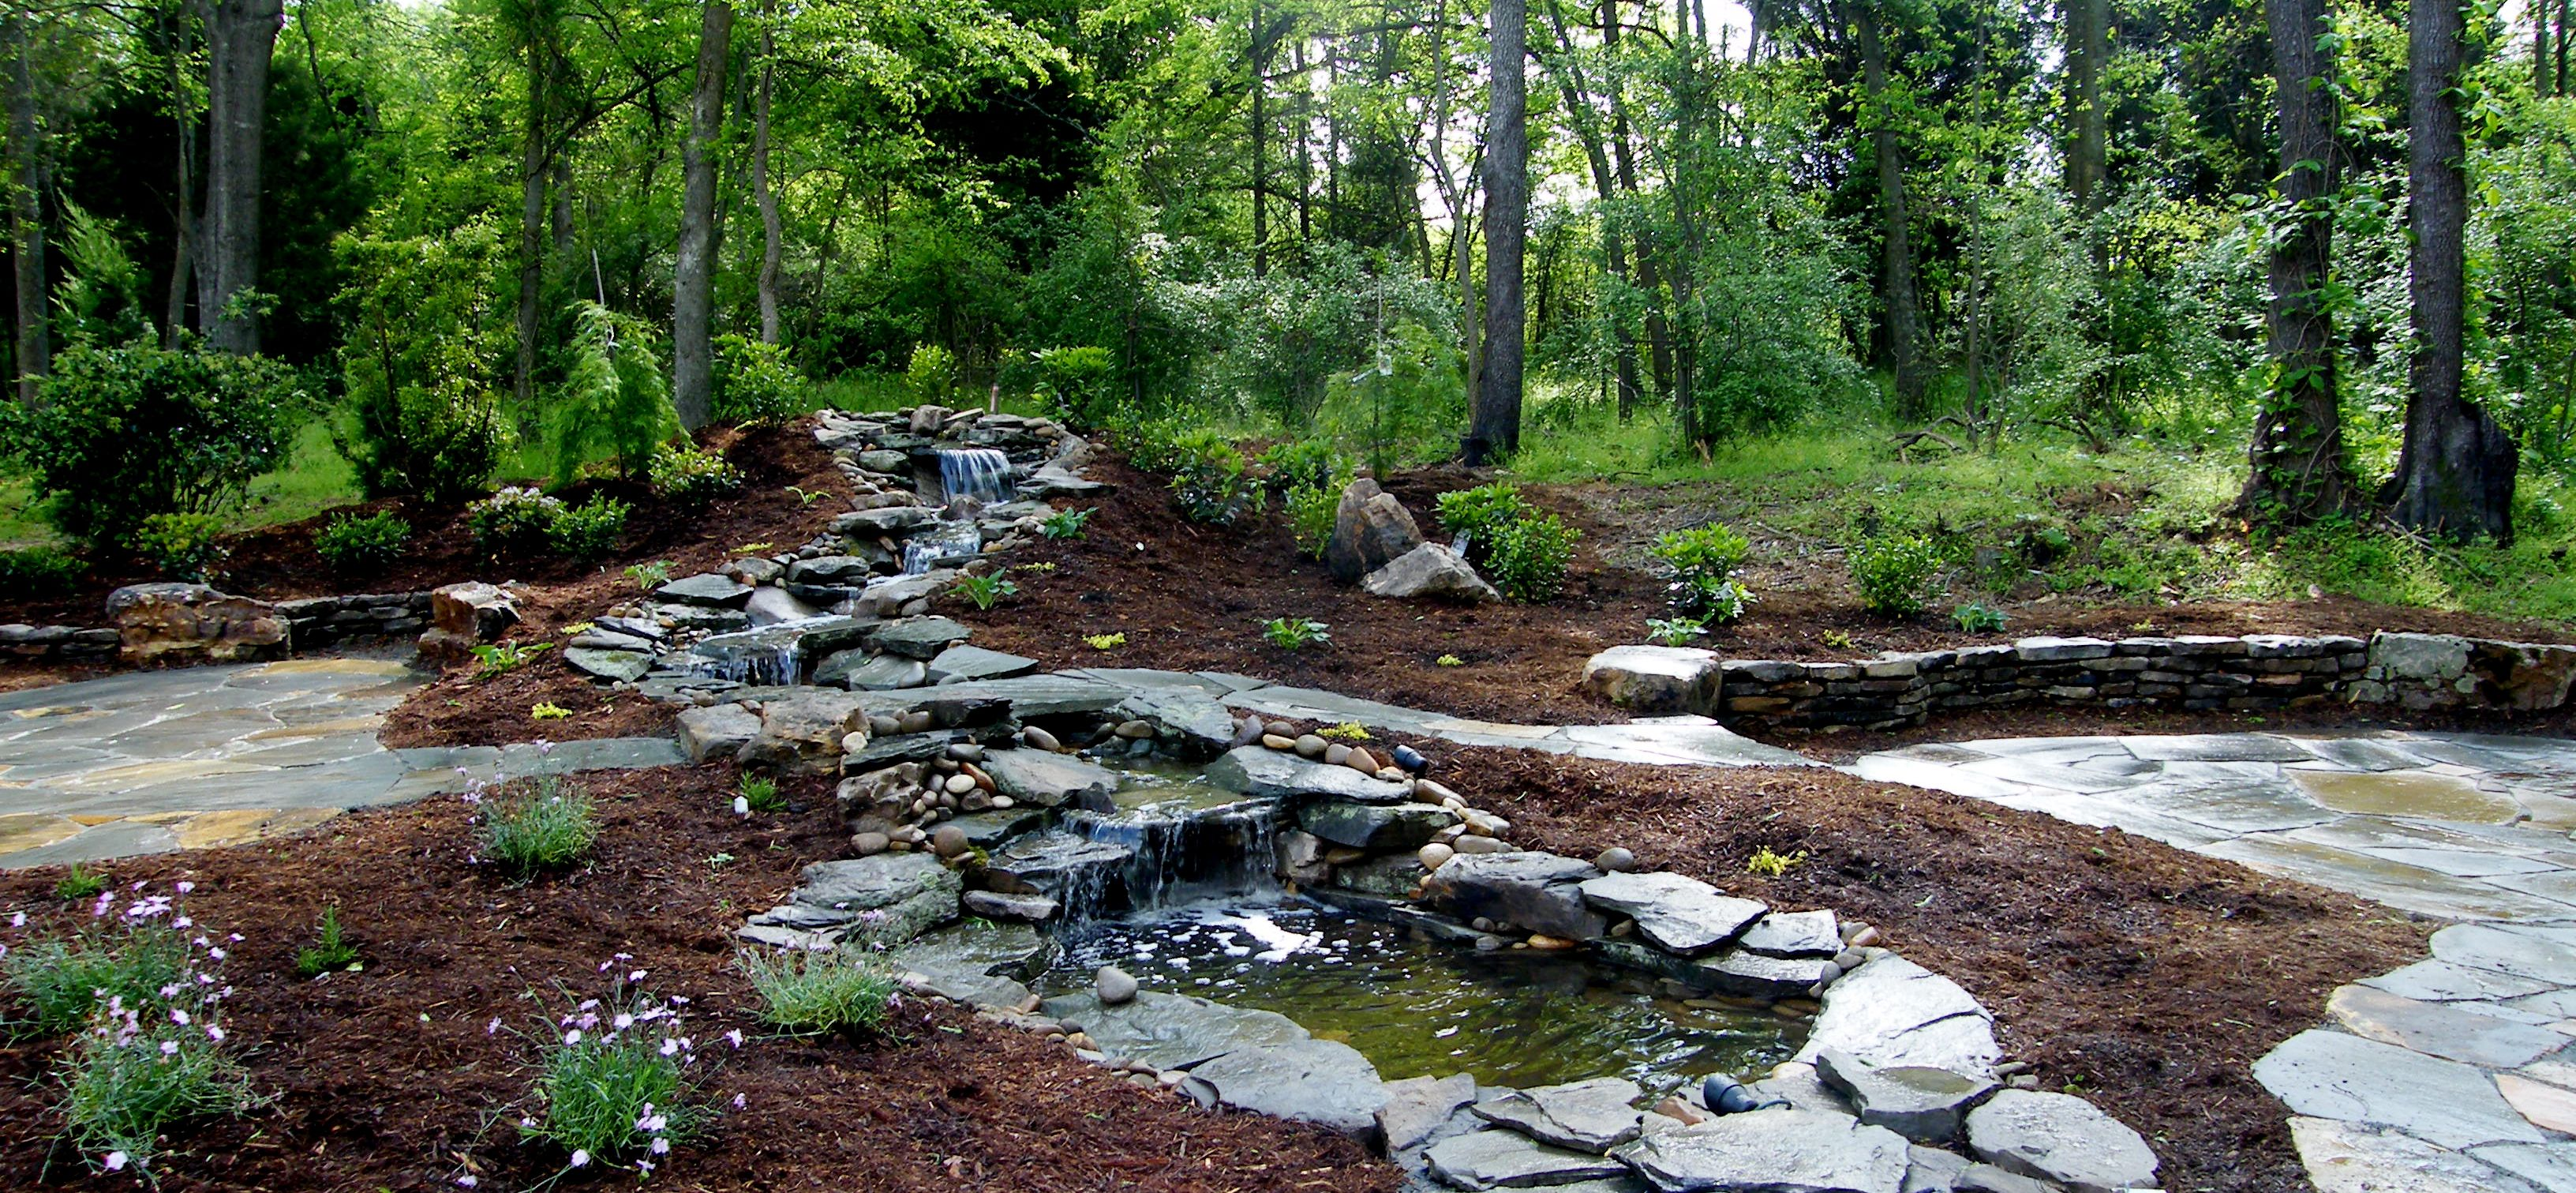 Landscape Design By All Natural Streams Landscaping Walkways Ponds Streams Landscaping Outdoor Lighting And Landscape Design Landscape Landscape Features